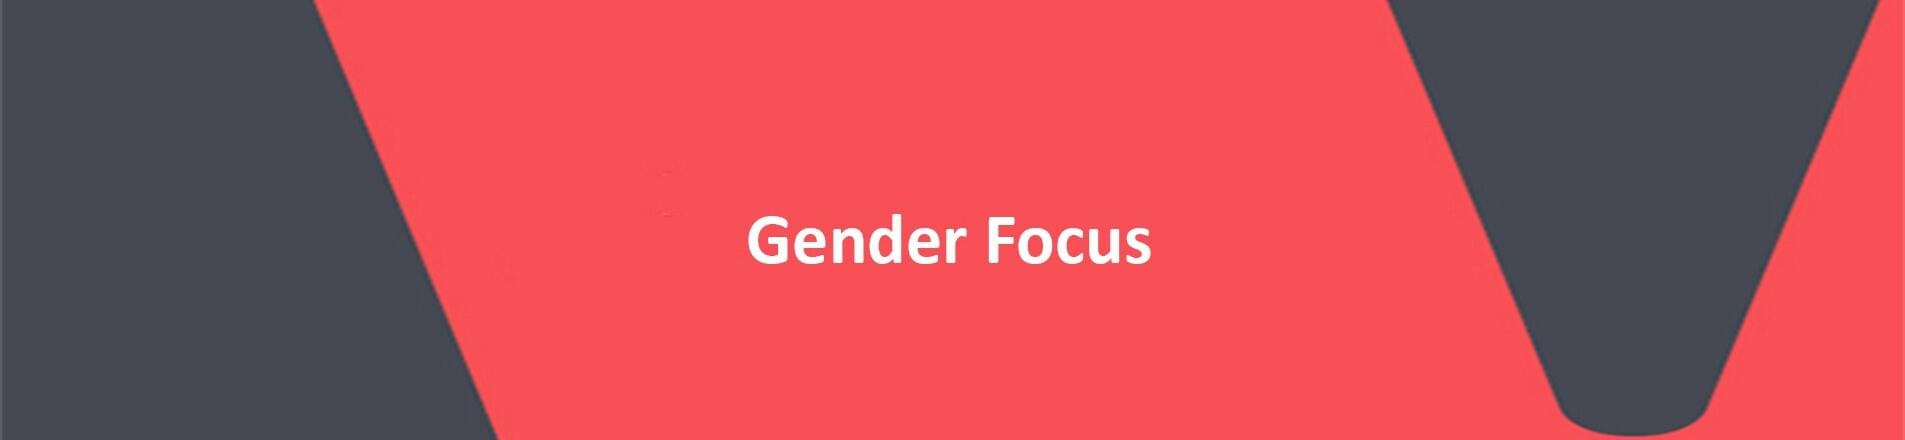 Red background, with white text spelling Gender Focus